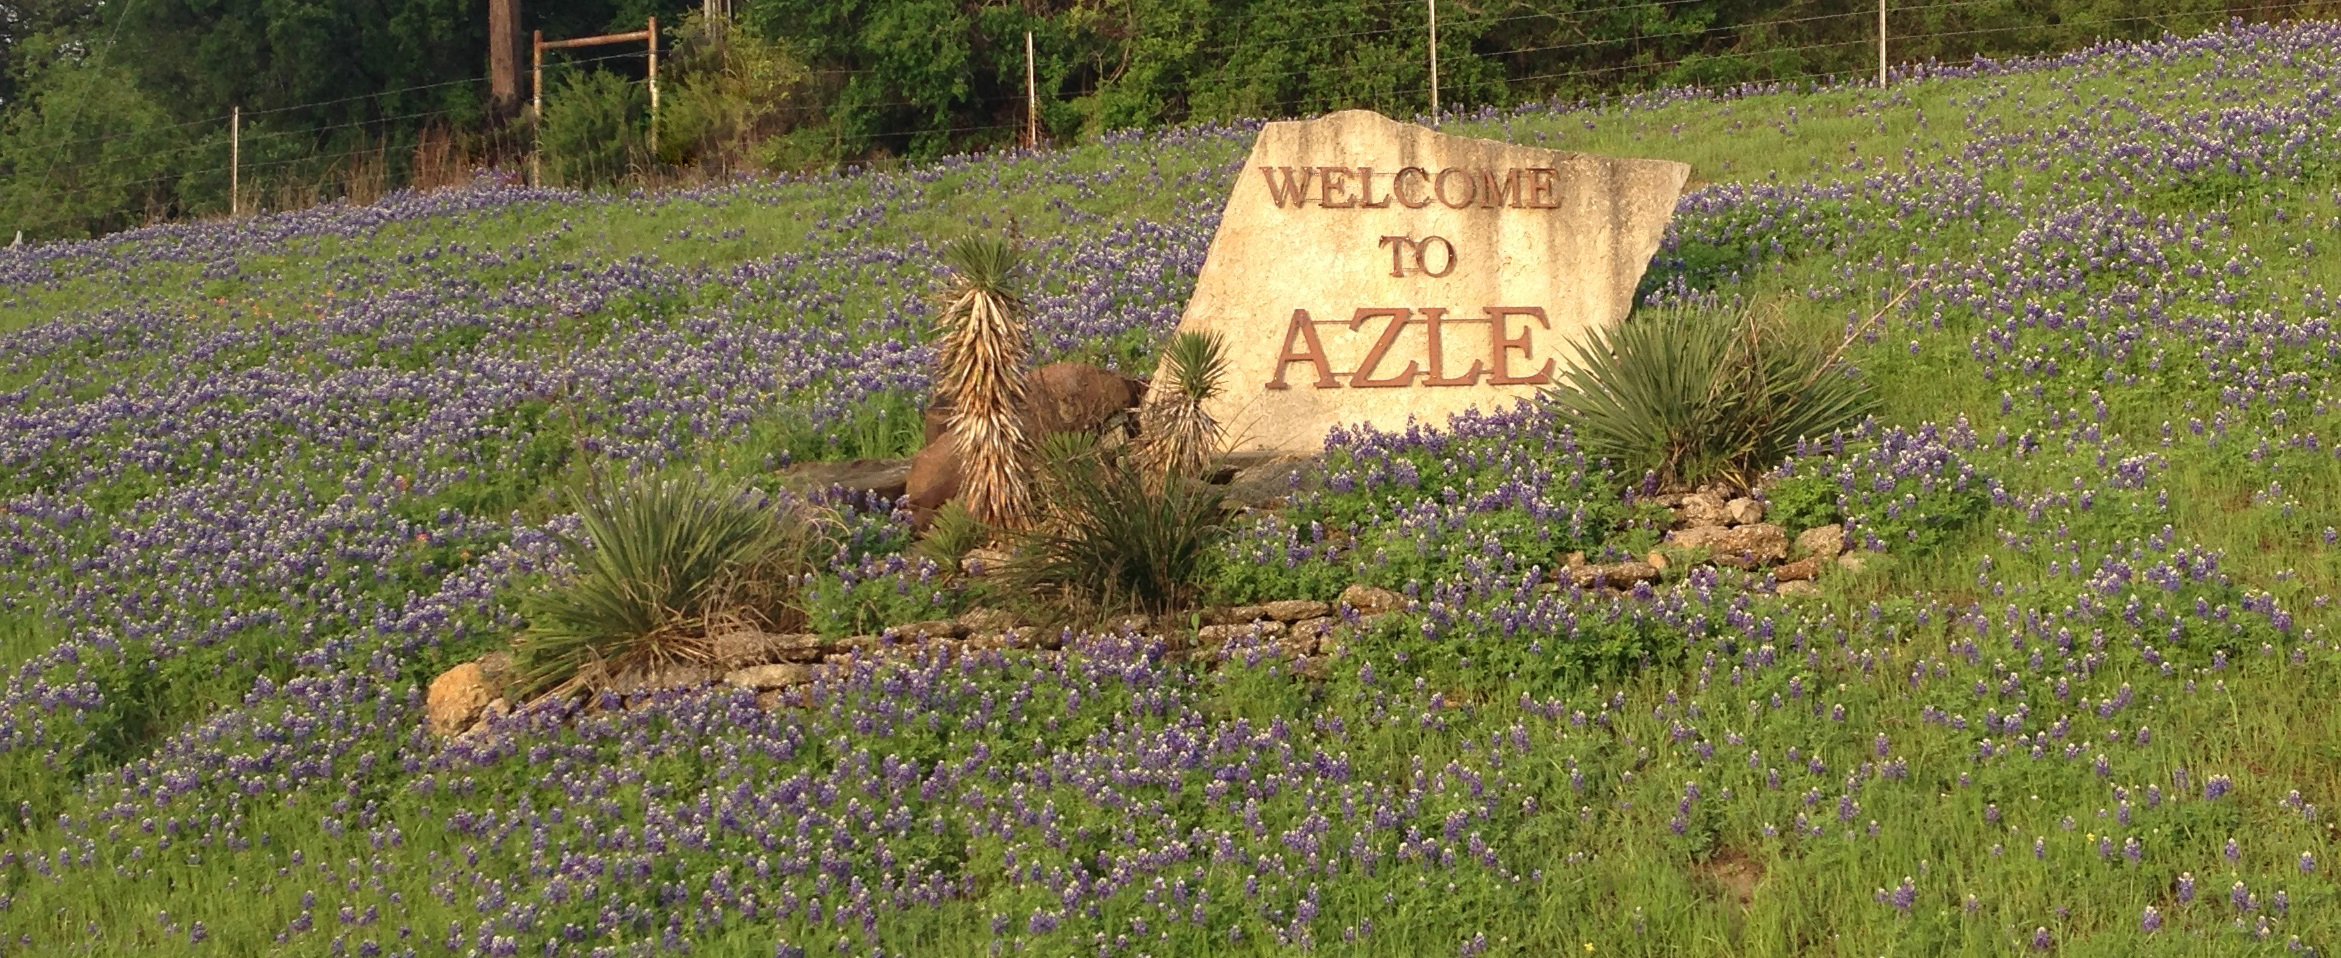 Azle Sign Bluebonnets